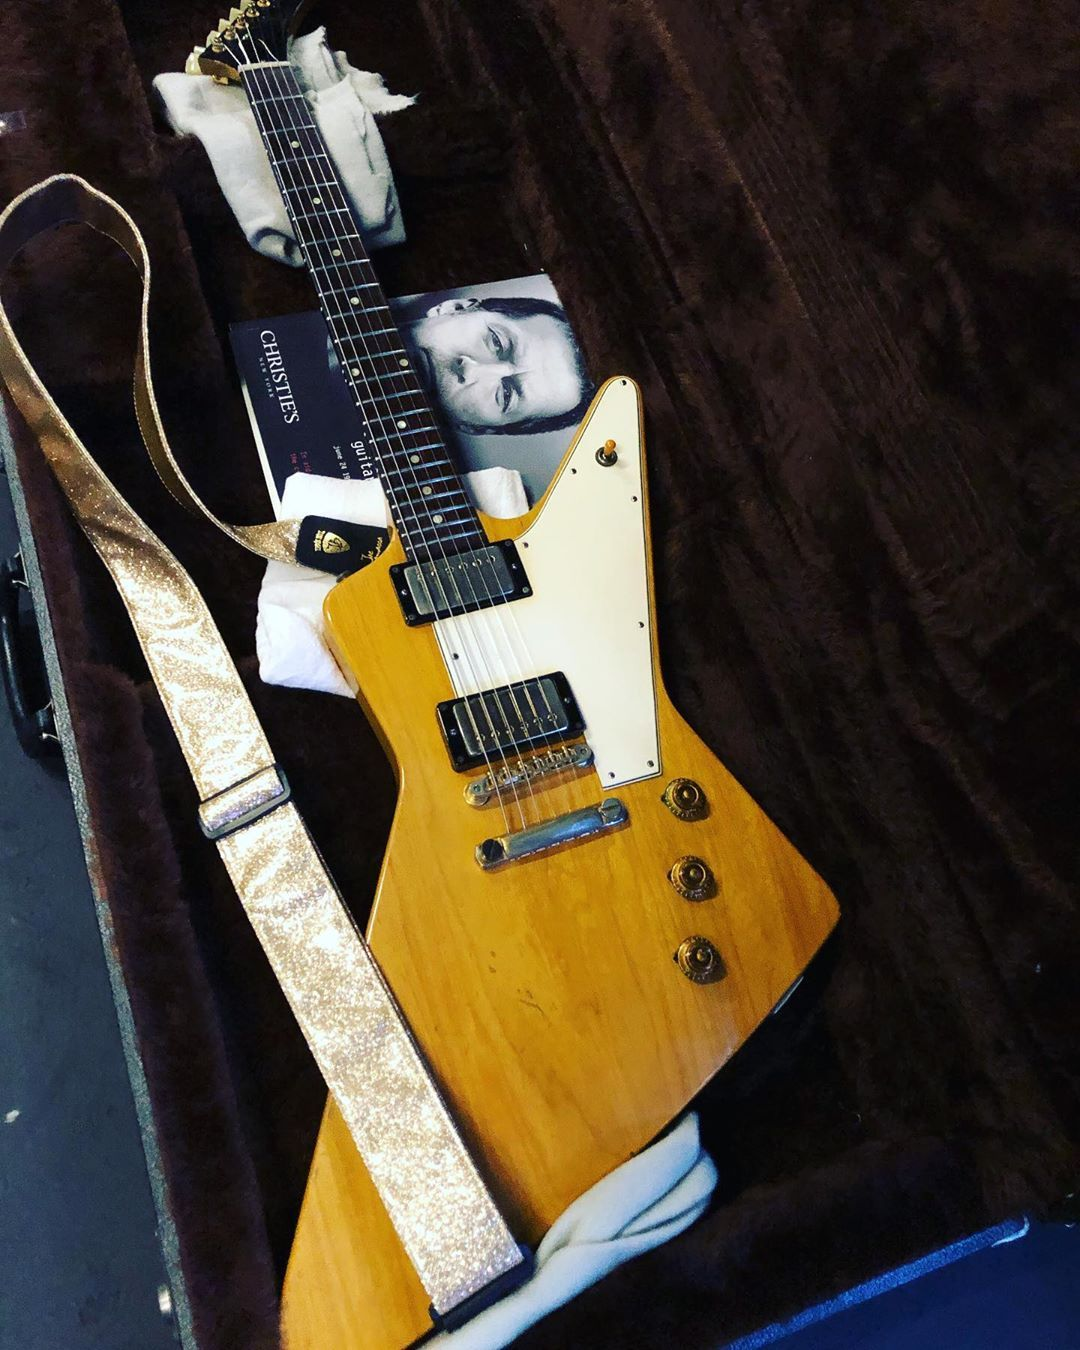 Joe Bonamassa On Instagram Another Guest Guitar For Our Summer Tour Eric Clapton S 1958 Gibson Explorer It S A In 2020 Gibson Explorer Eric Clapton Joe Bonamassa